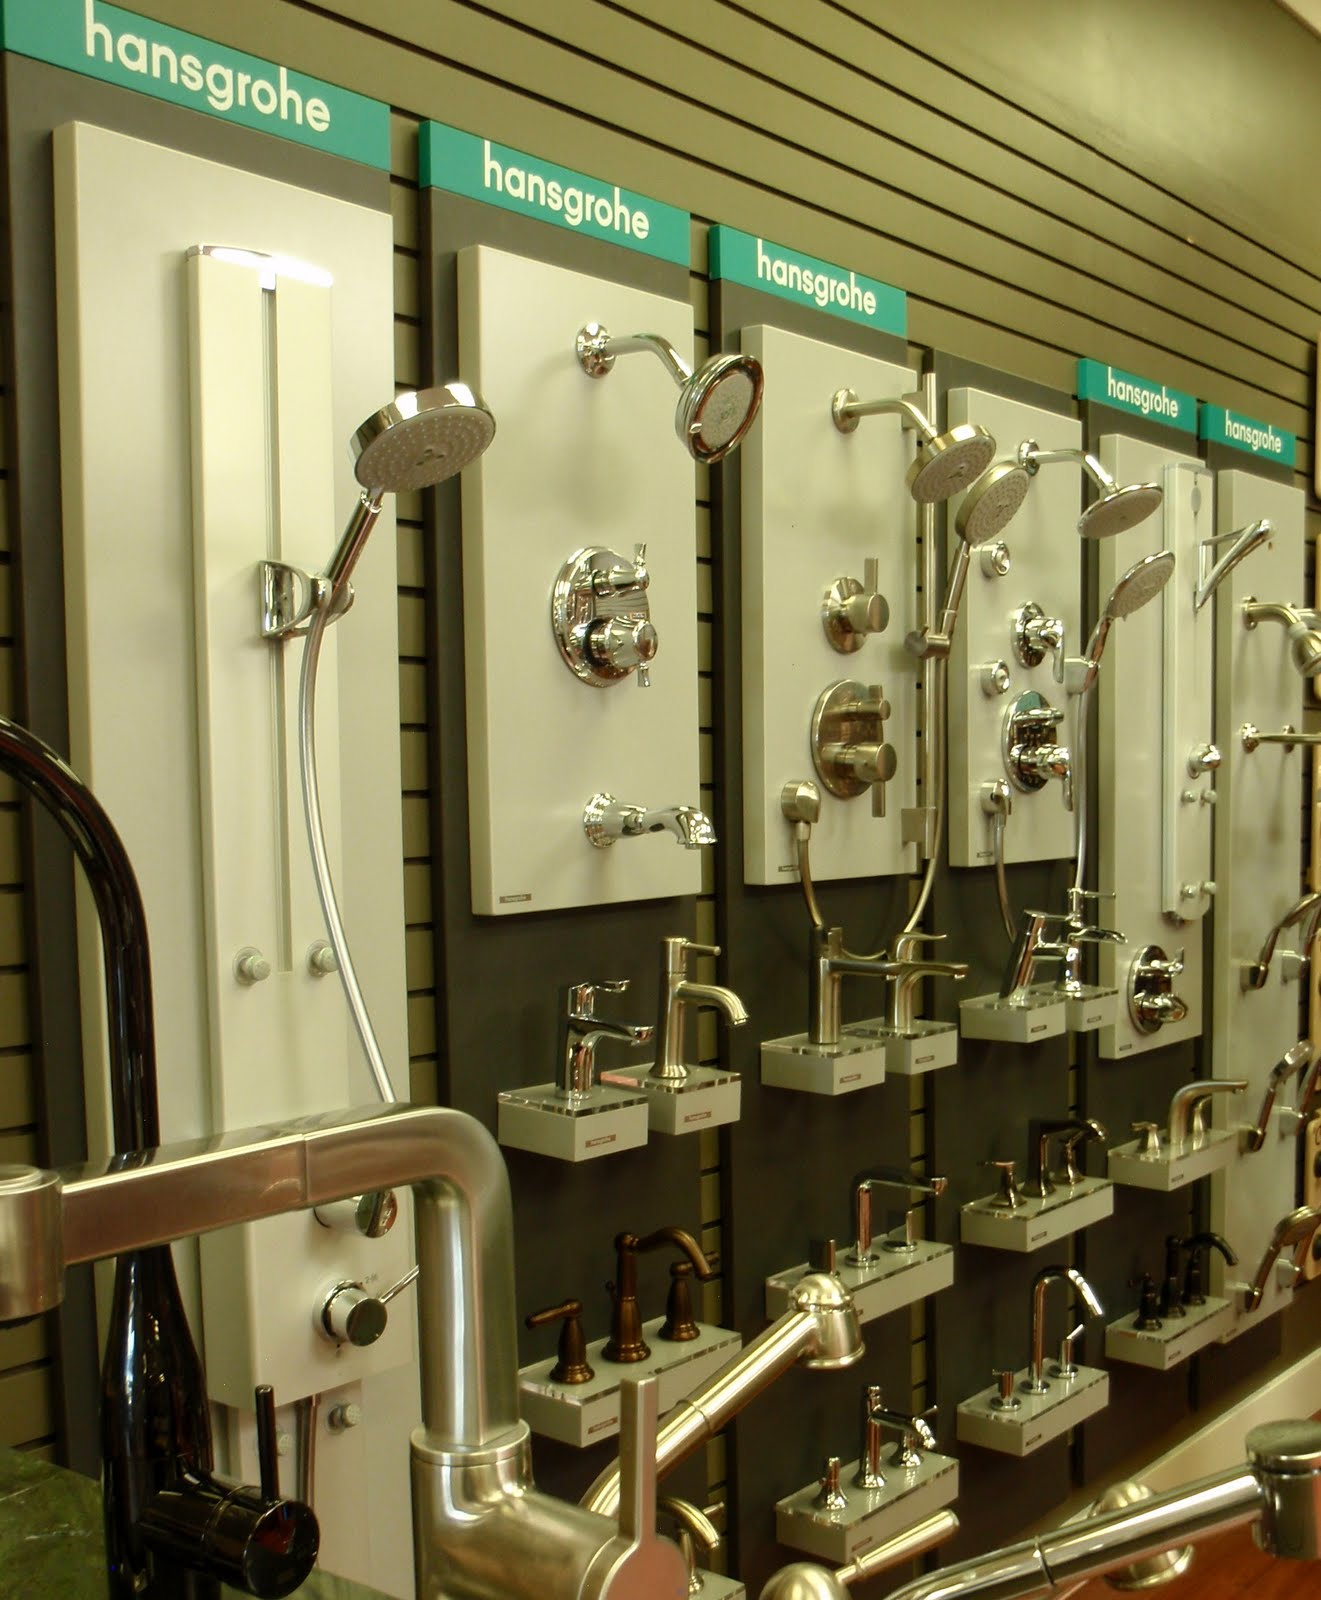 Hooked on Hardware: New Hansgrohe Experts - Now at Belmont Hardware